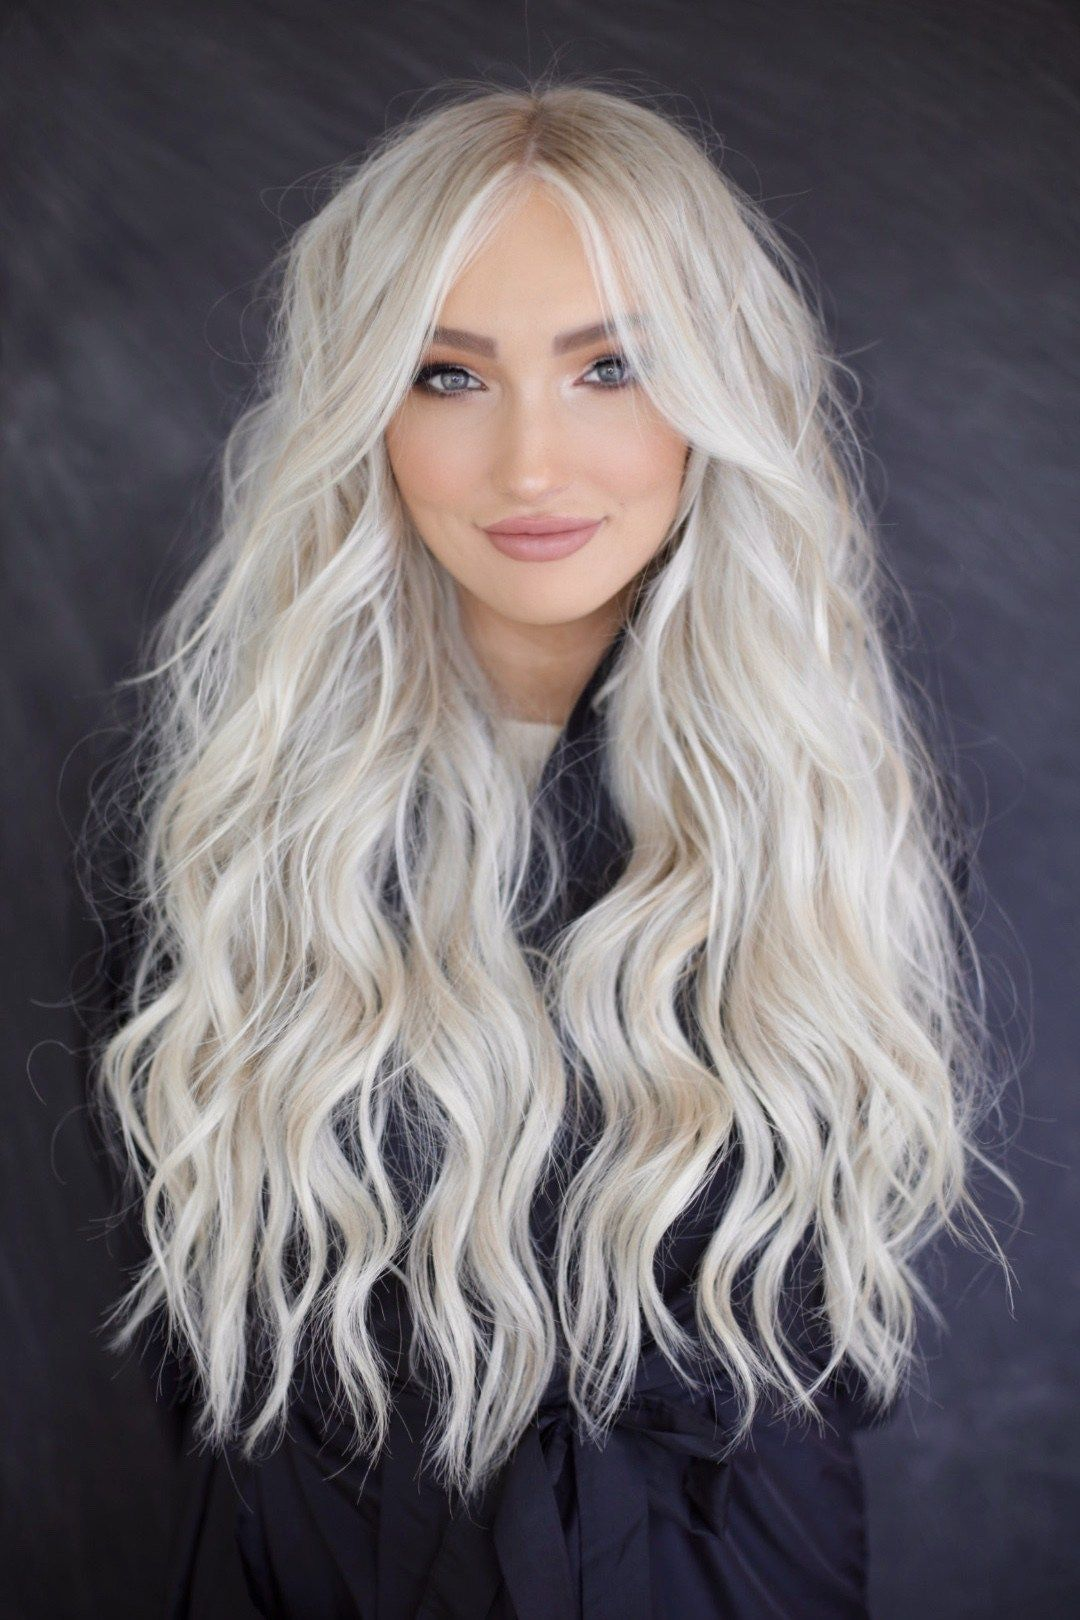 2020 Best Lace Front Wigs Maintaining Grey Hair Long Grey Wig Bright Pink Lace Front Wig 360 Lace Wig White Girl